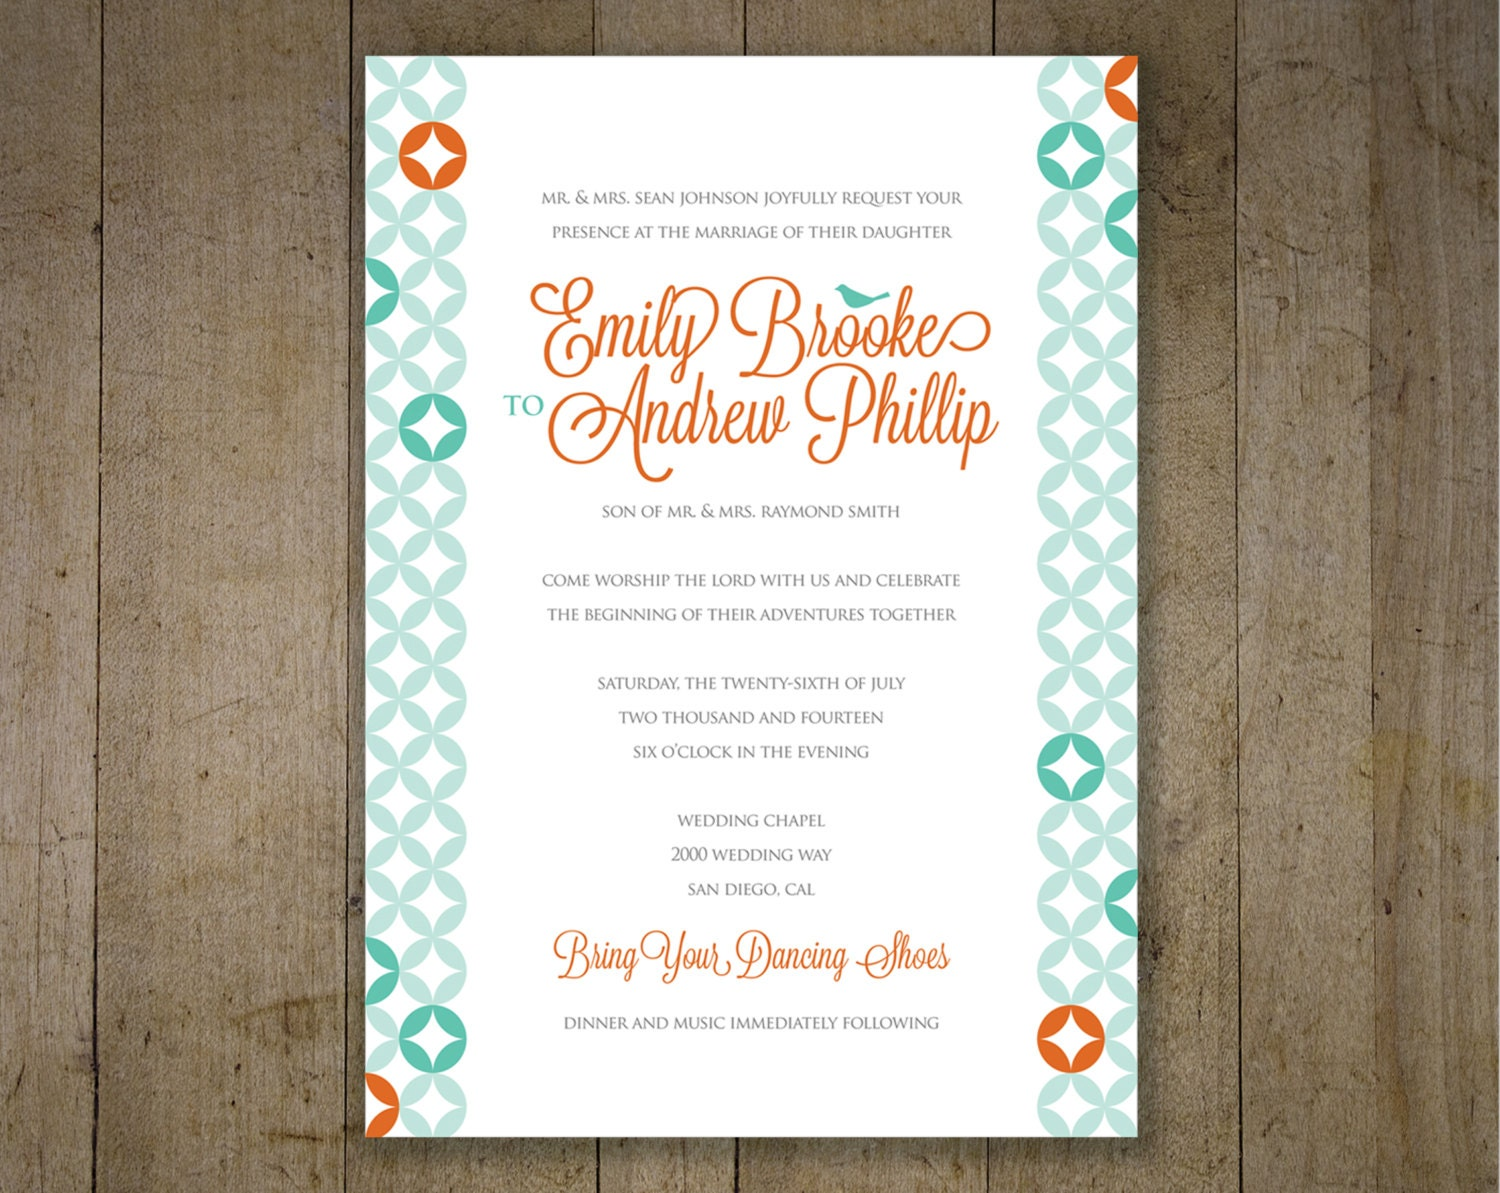 Turquoise And Coral Wedding Invitations: Geometric Wedding Invitations Teal And Coral Custom By